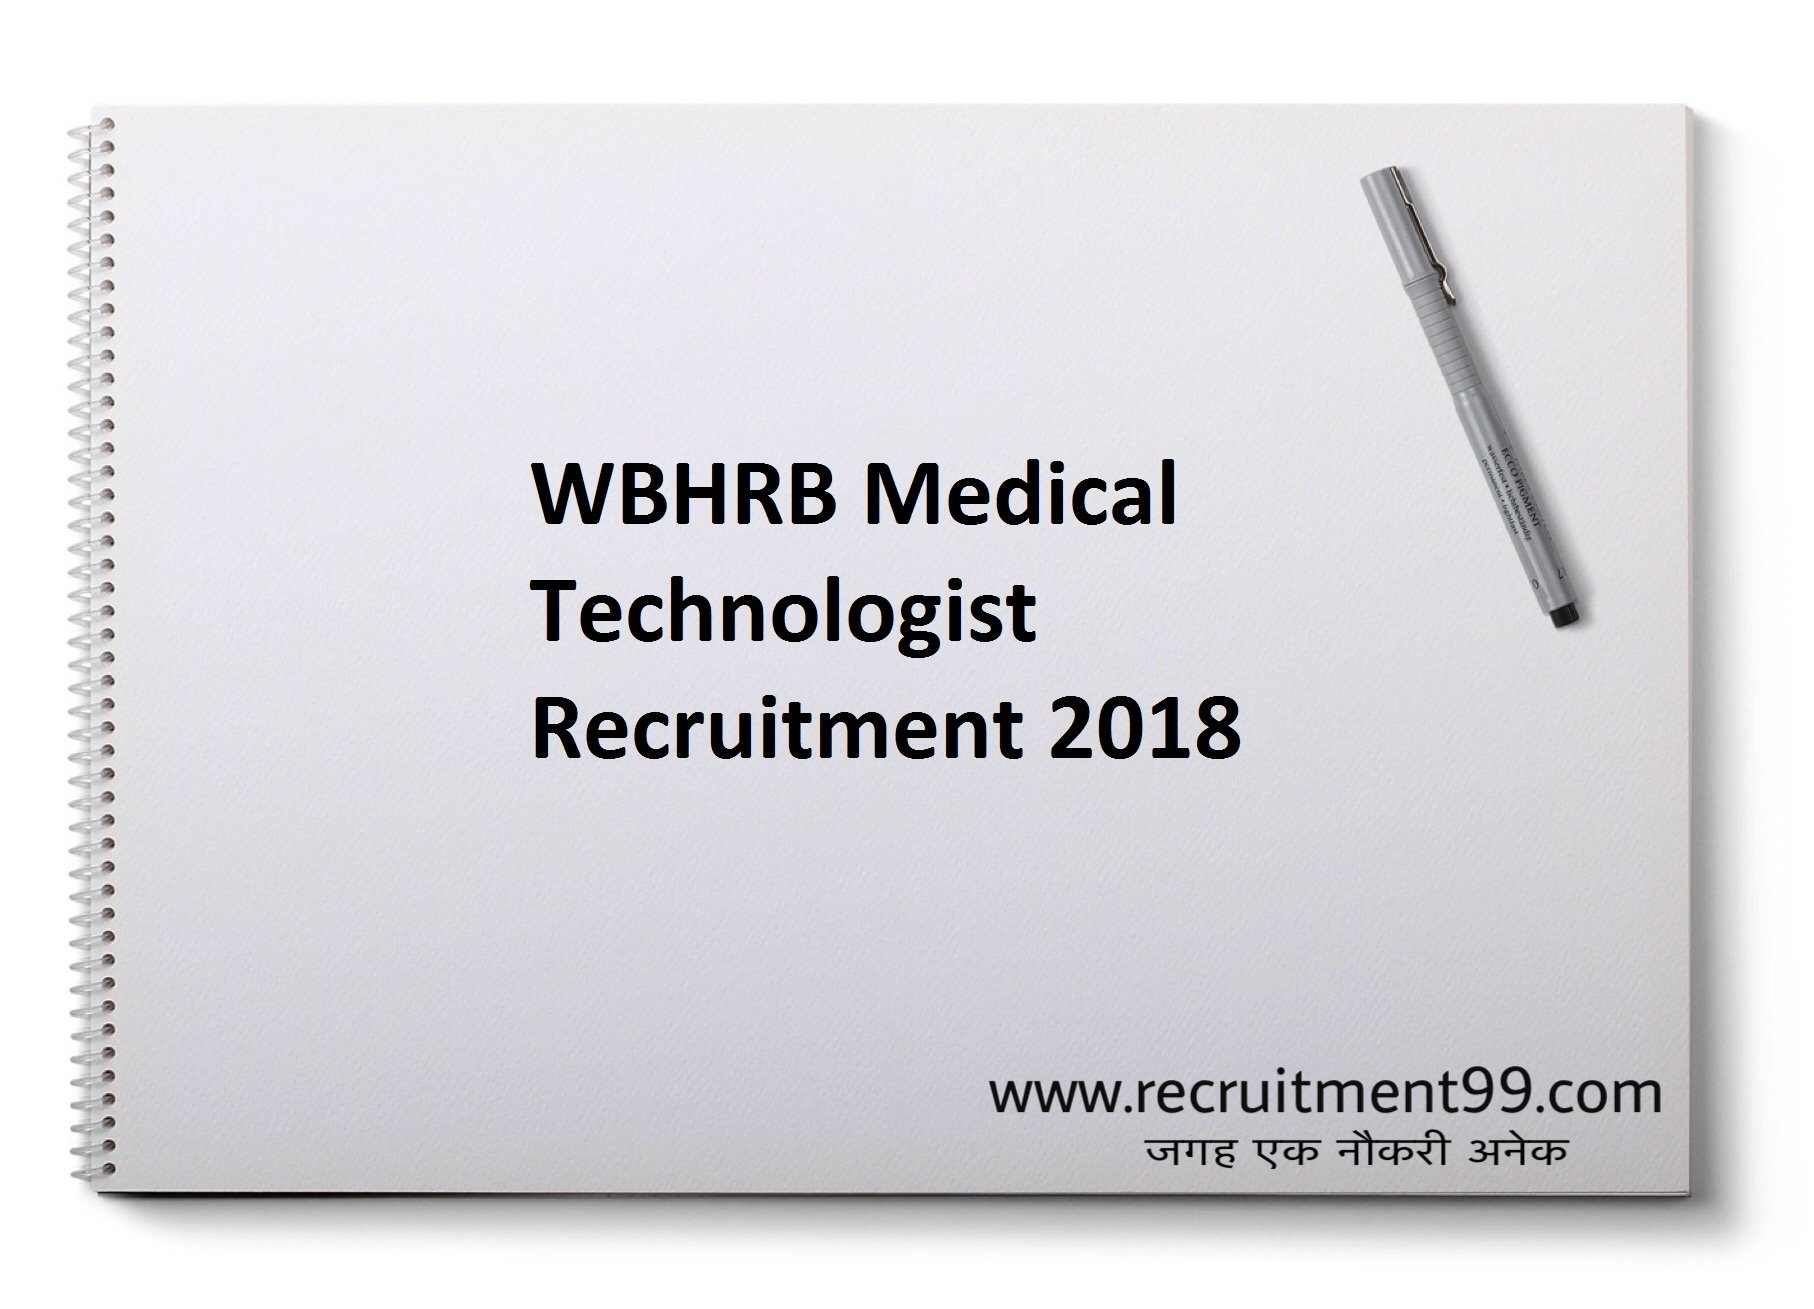 WBHRB Medical Technologist Recruitment Admit Card Result 2018